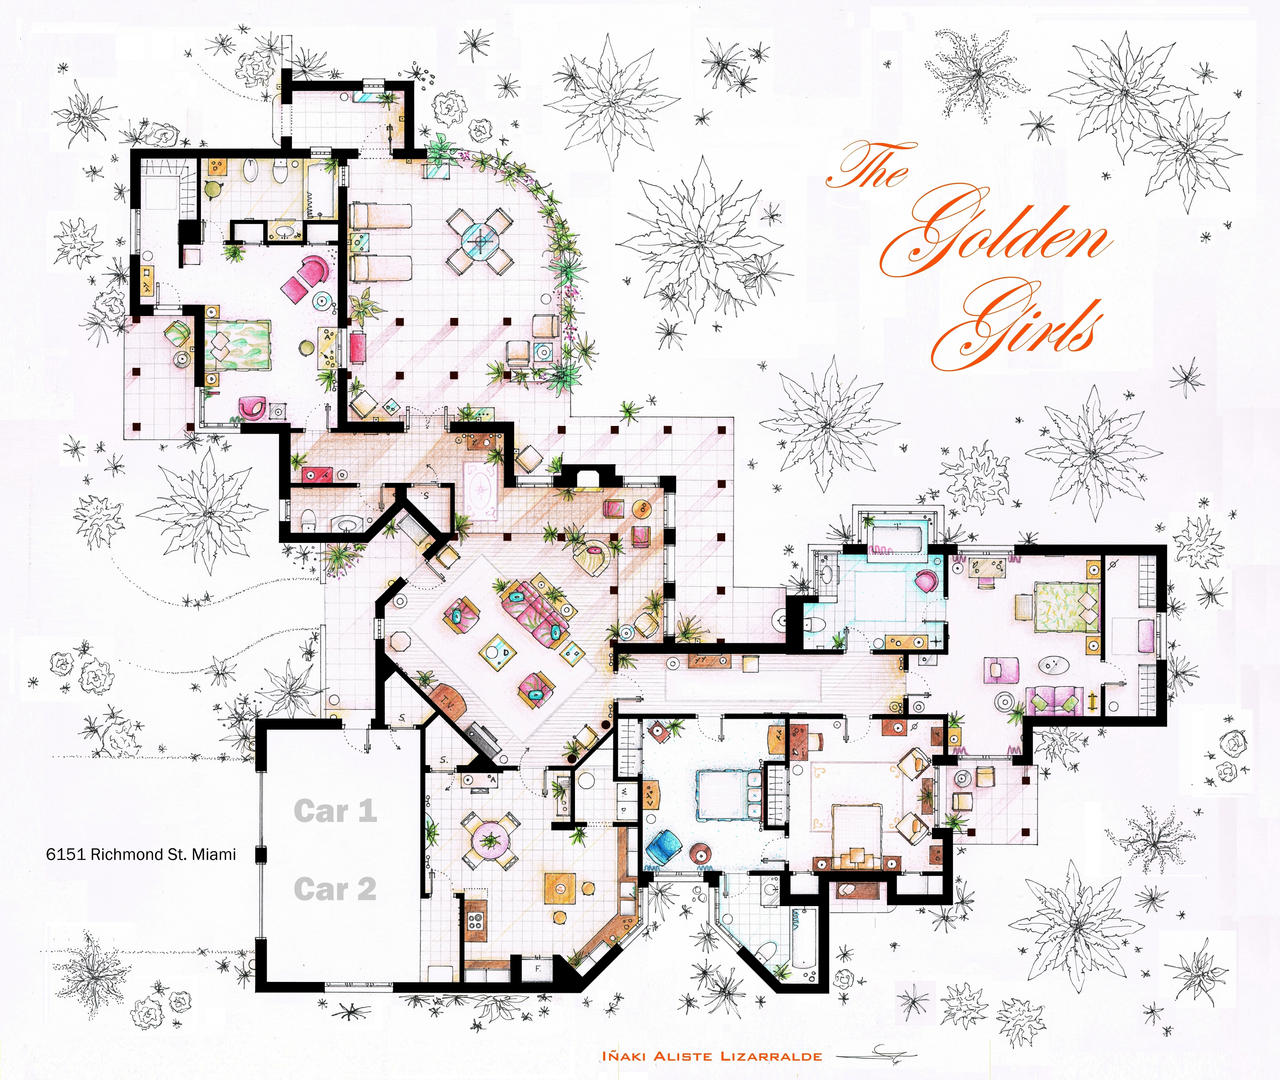 the golden girls house floorplan v 2 by nikneuk on deviantart the golden girls house floorplan v 2 by nikneuk